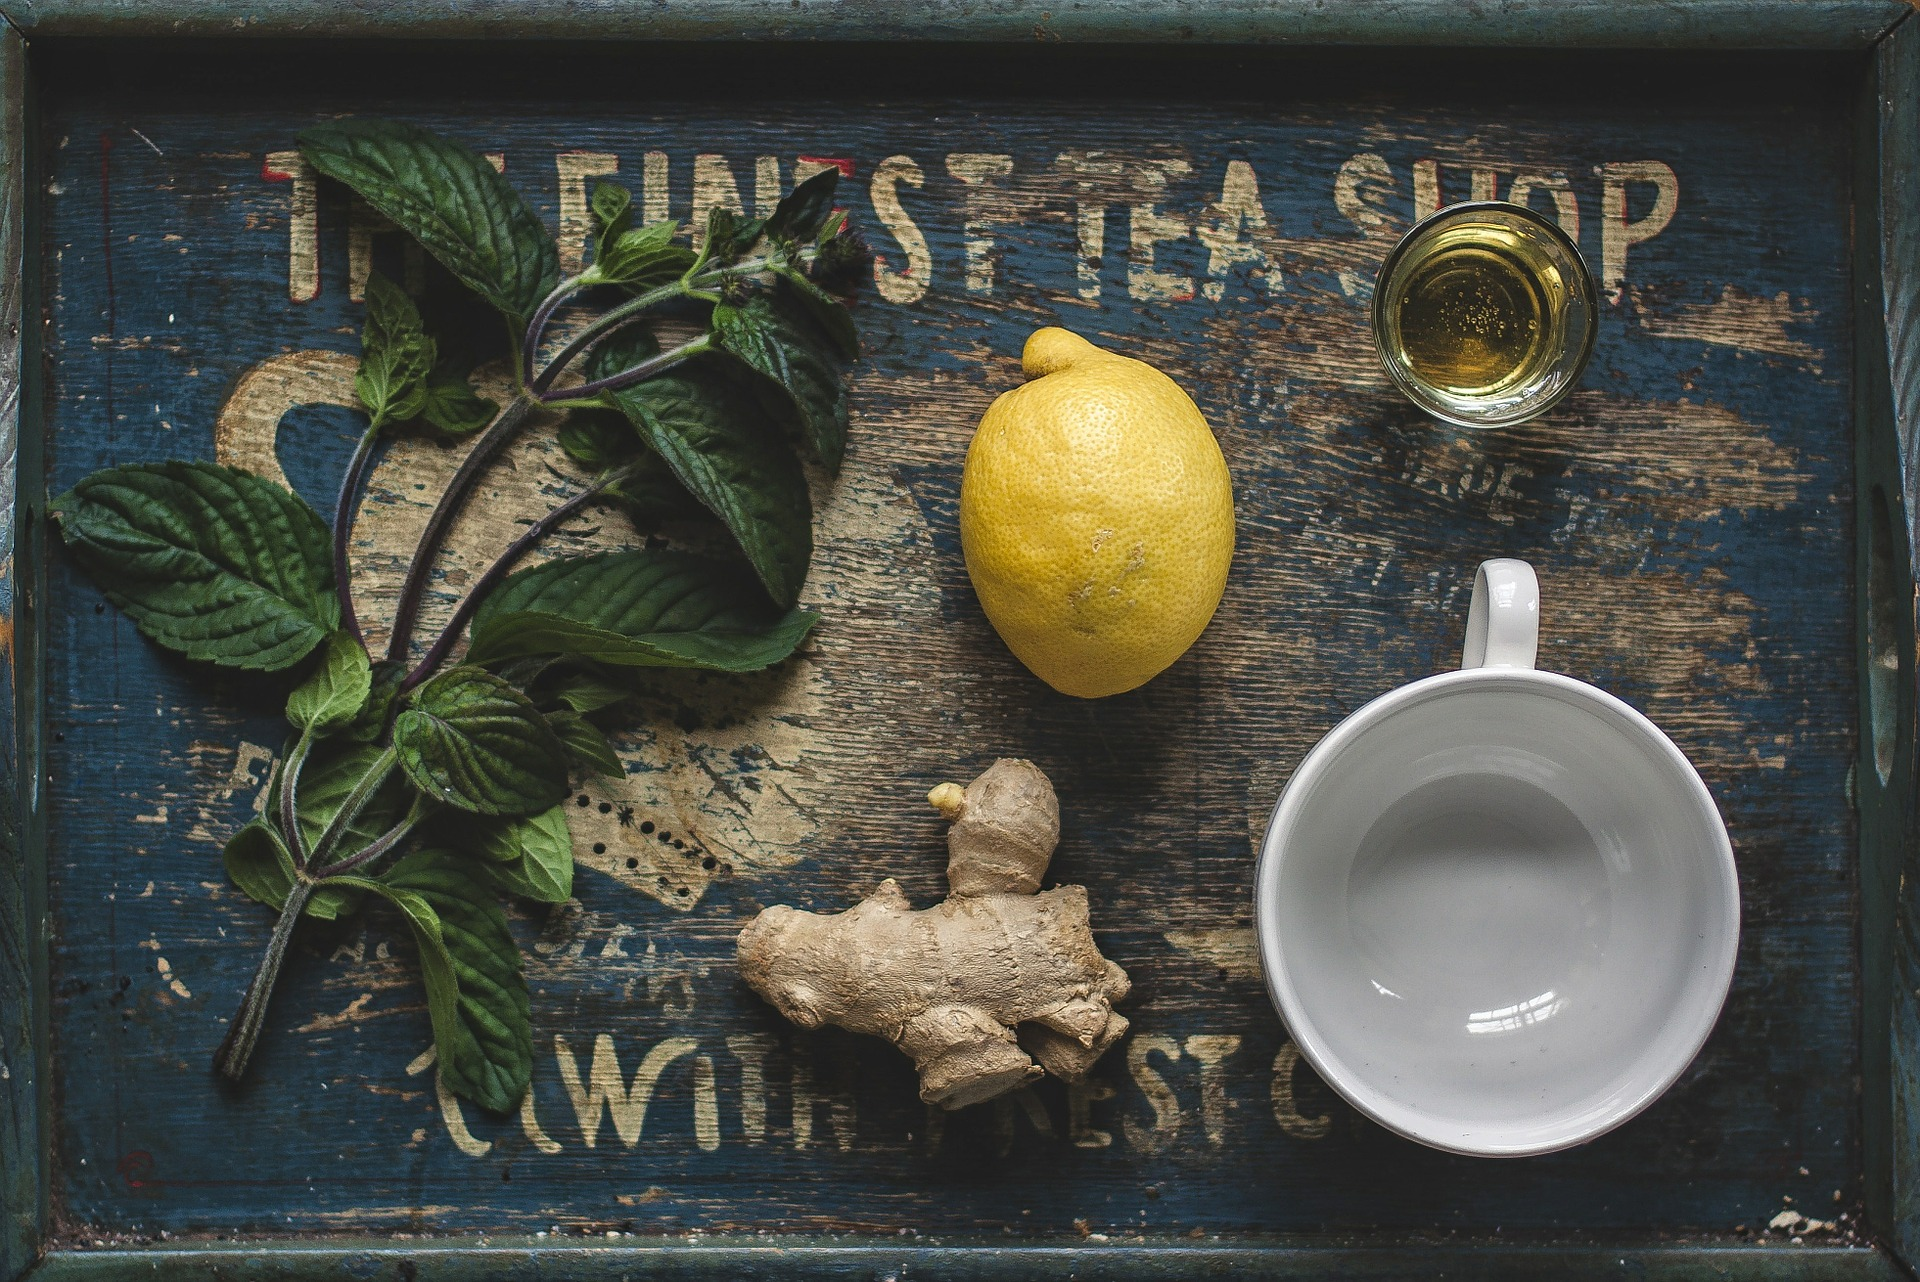 Plan out your ideal self-care day. Pictured: Lemon ginger tea ingredients.